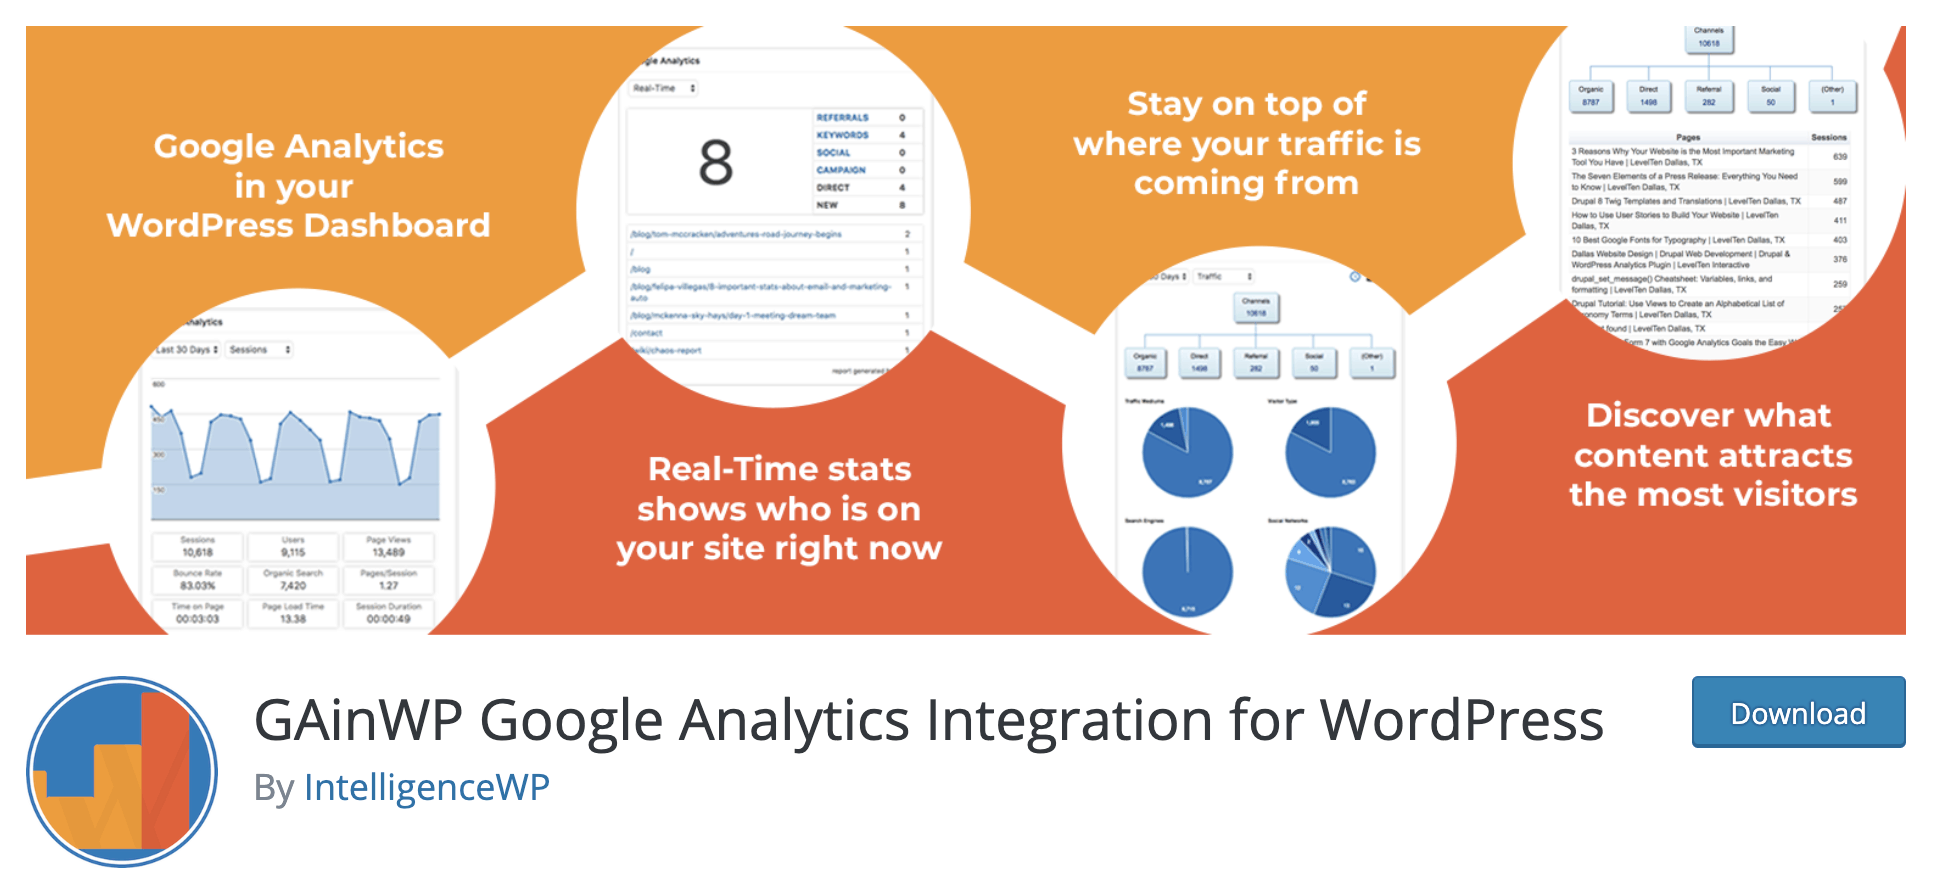 gainwp google analytics integration for wordpress